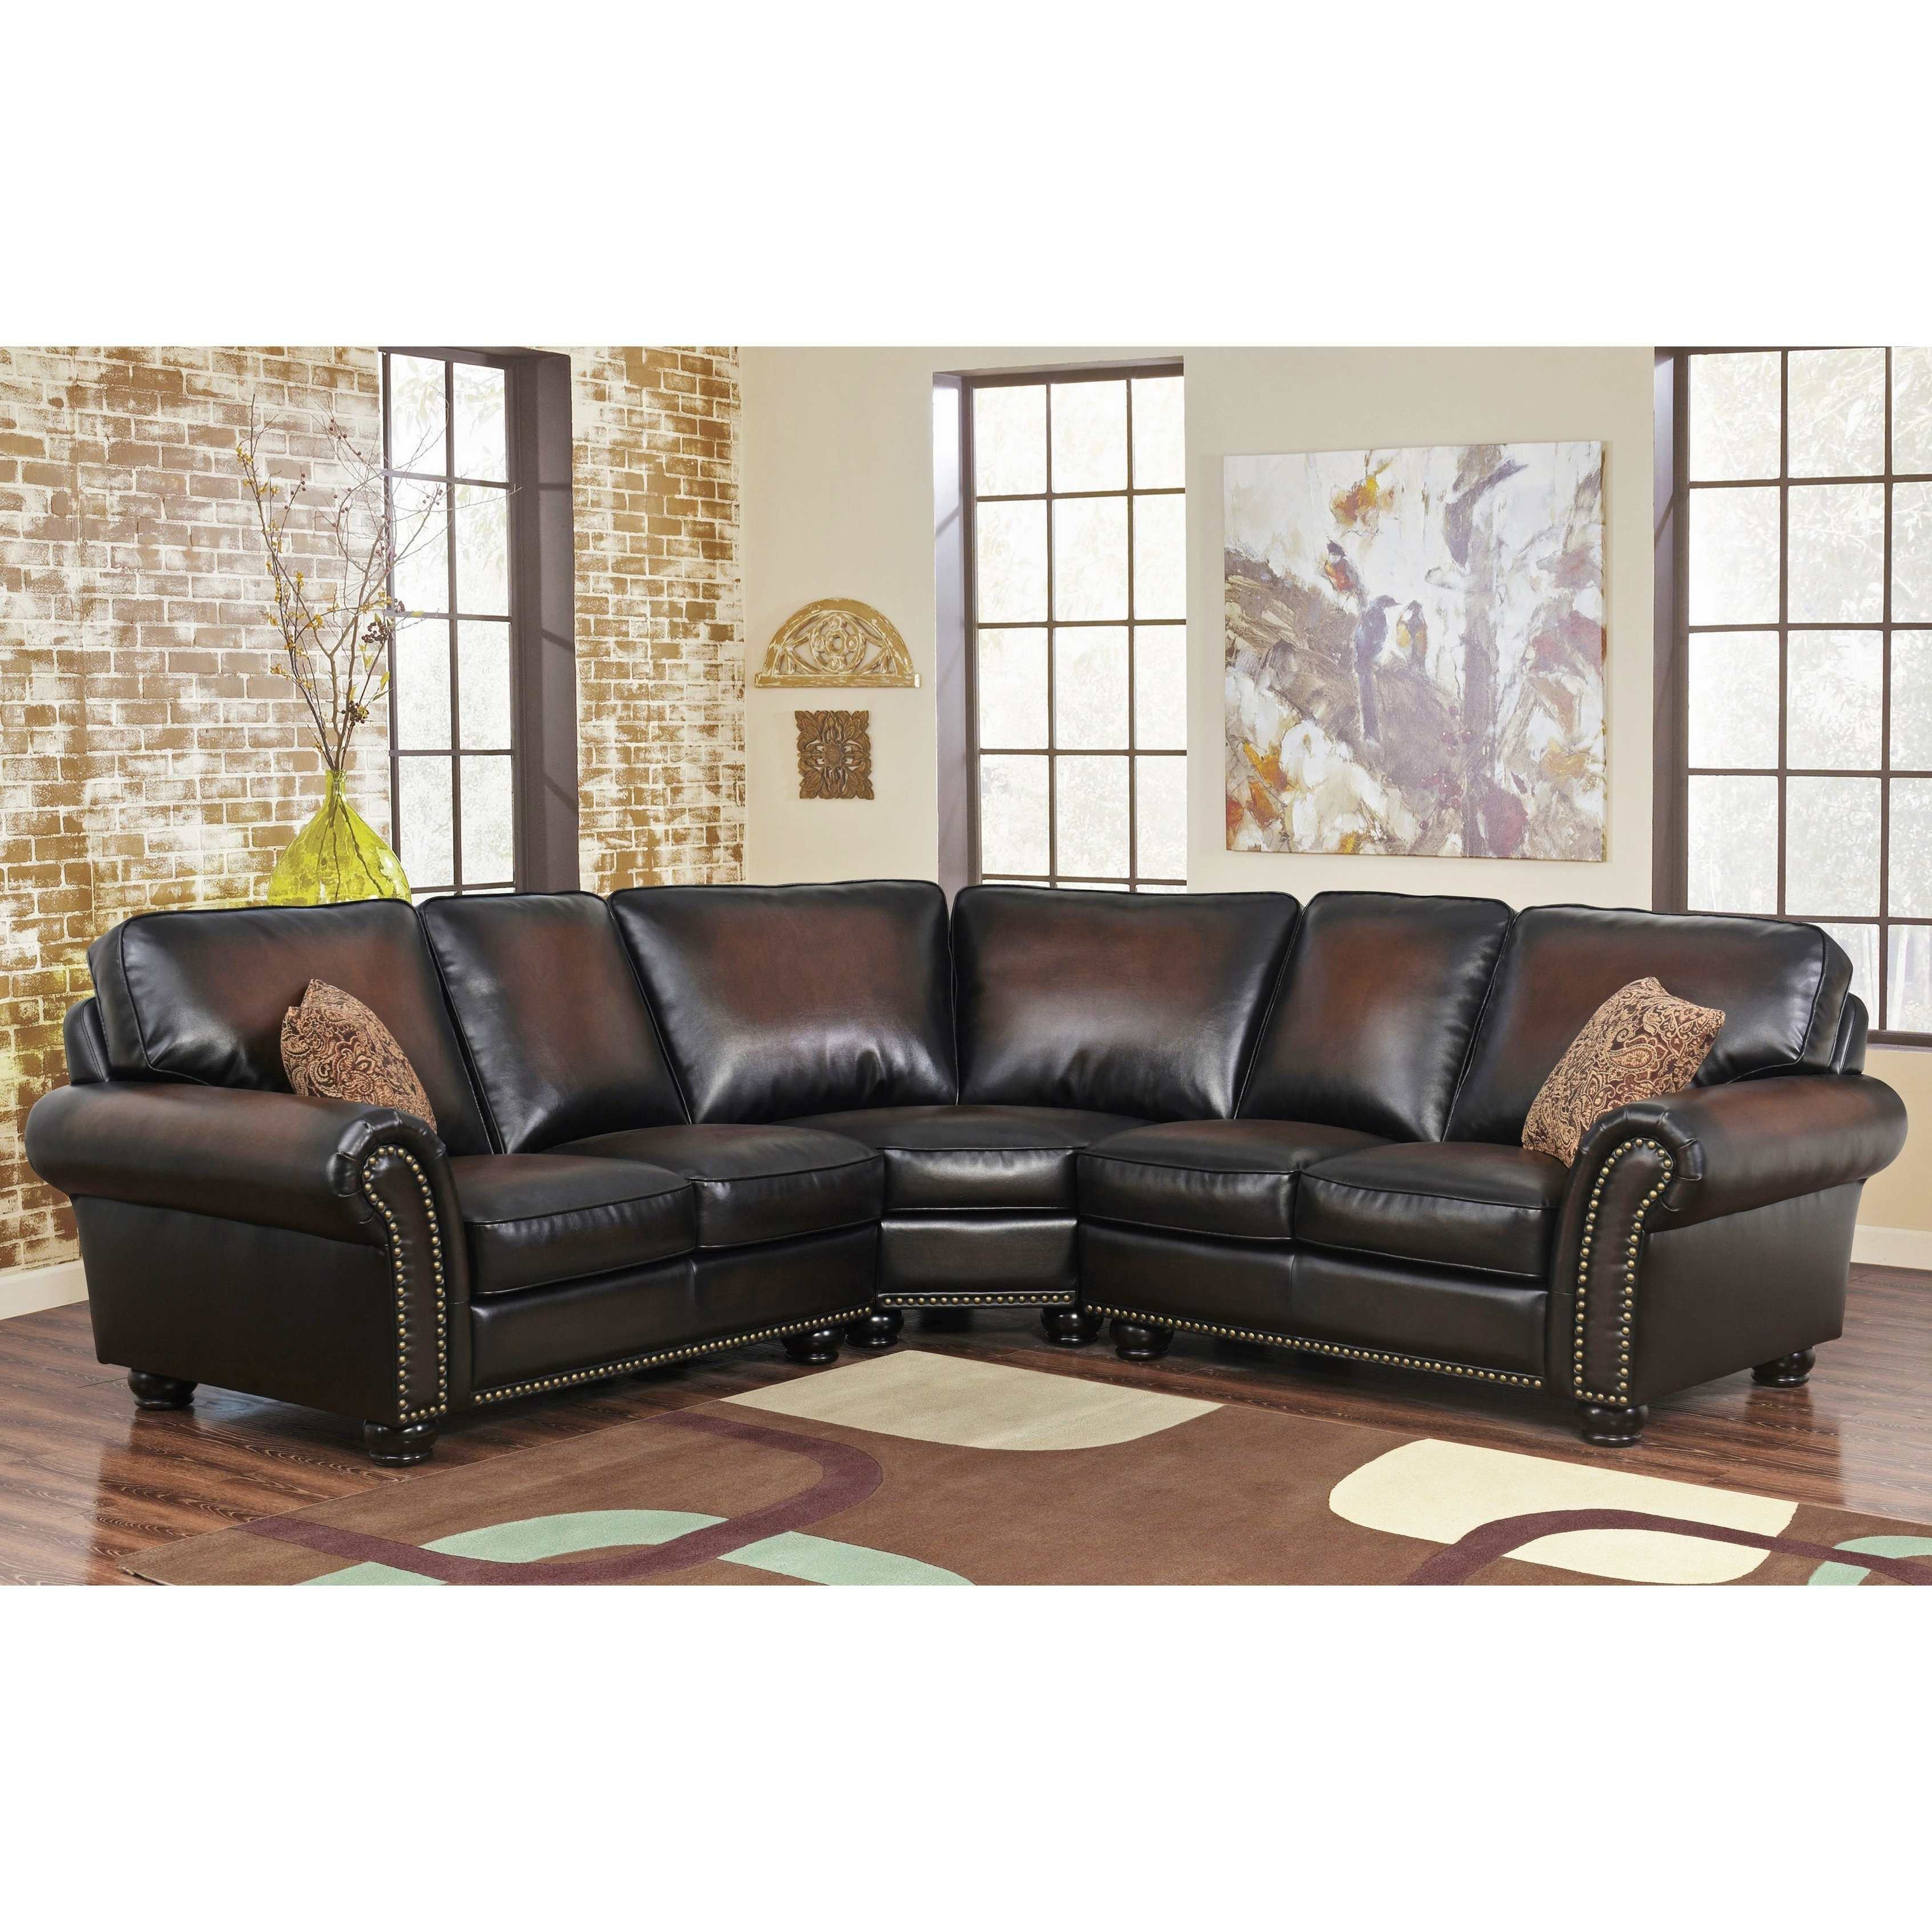 Shop Abbyson Melrose Bonded Leather 3-Piece Sectional - Free with regard to Haven Blue Steel 3 Piece Sectionals (Image 25 of 30)